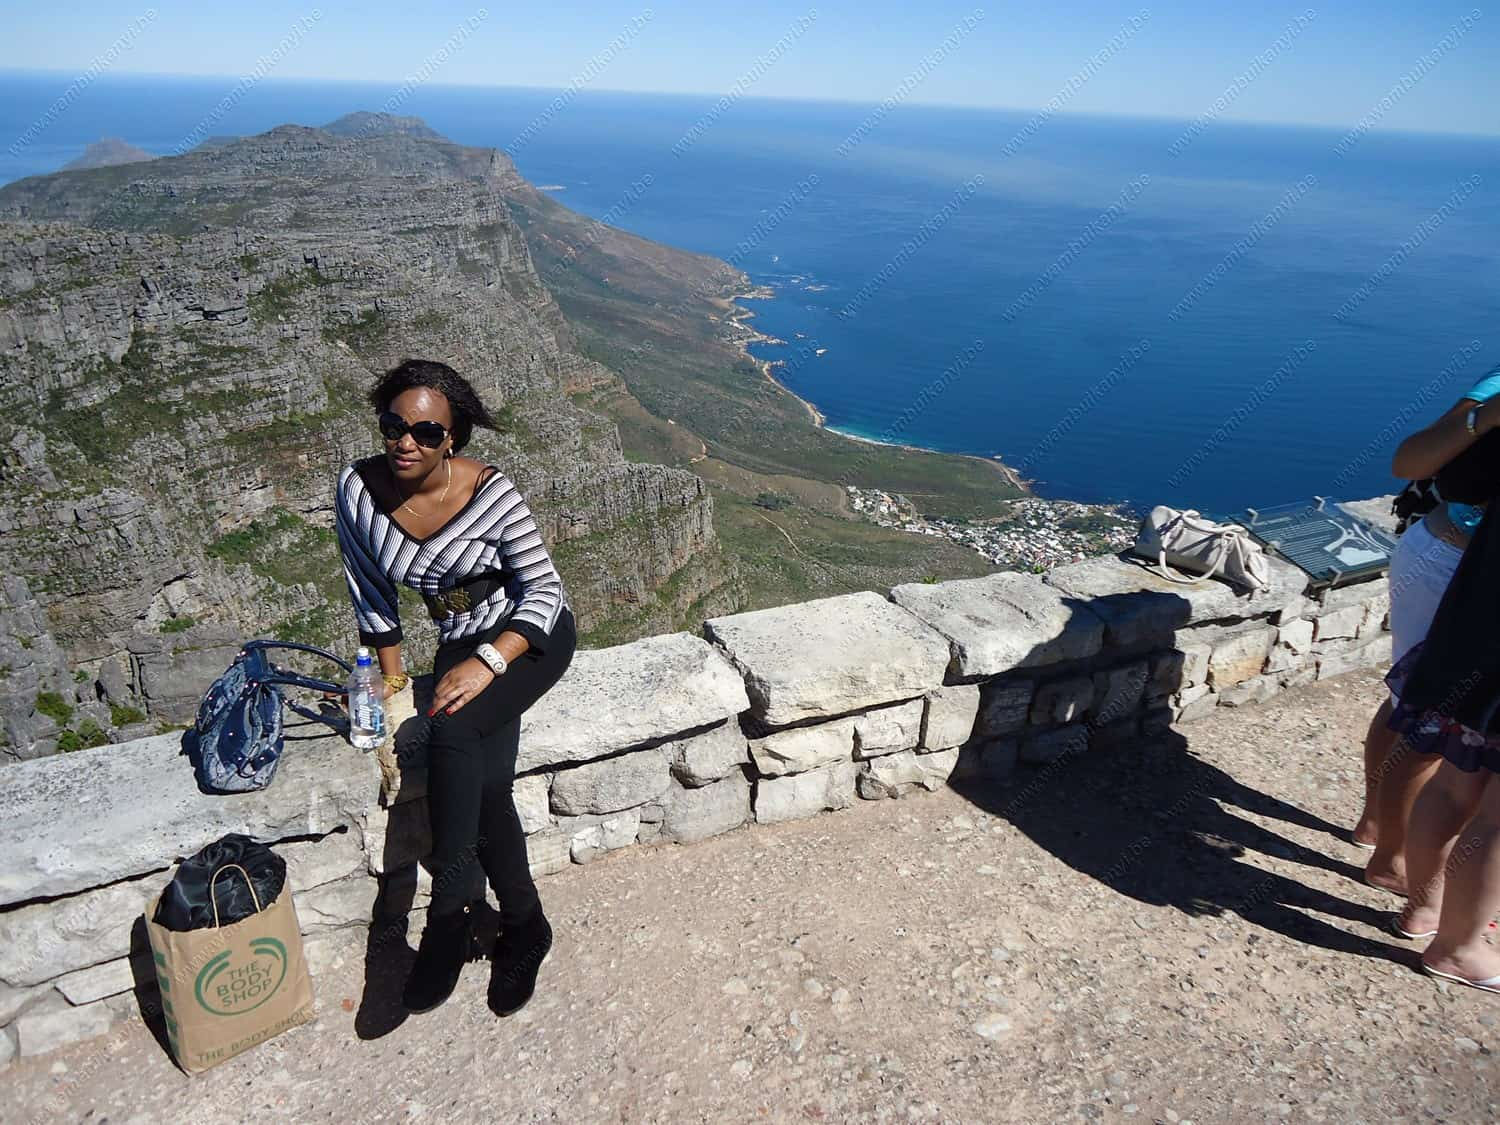 Top Things To Do In Cape Town, South Africa